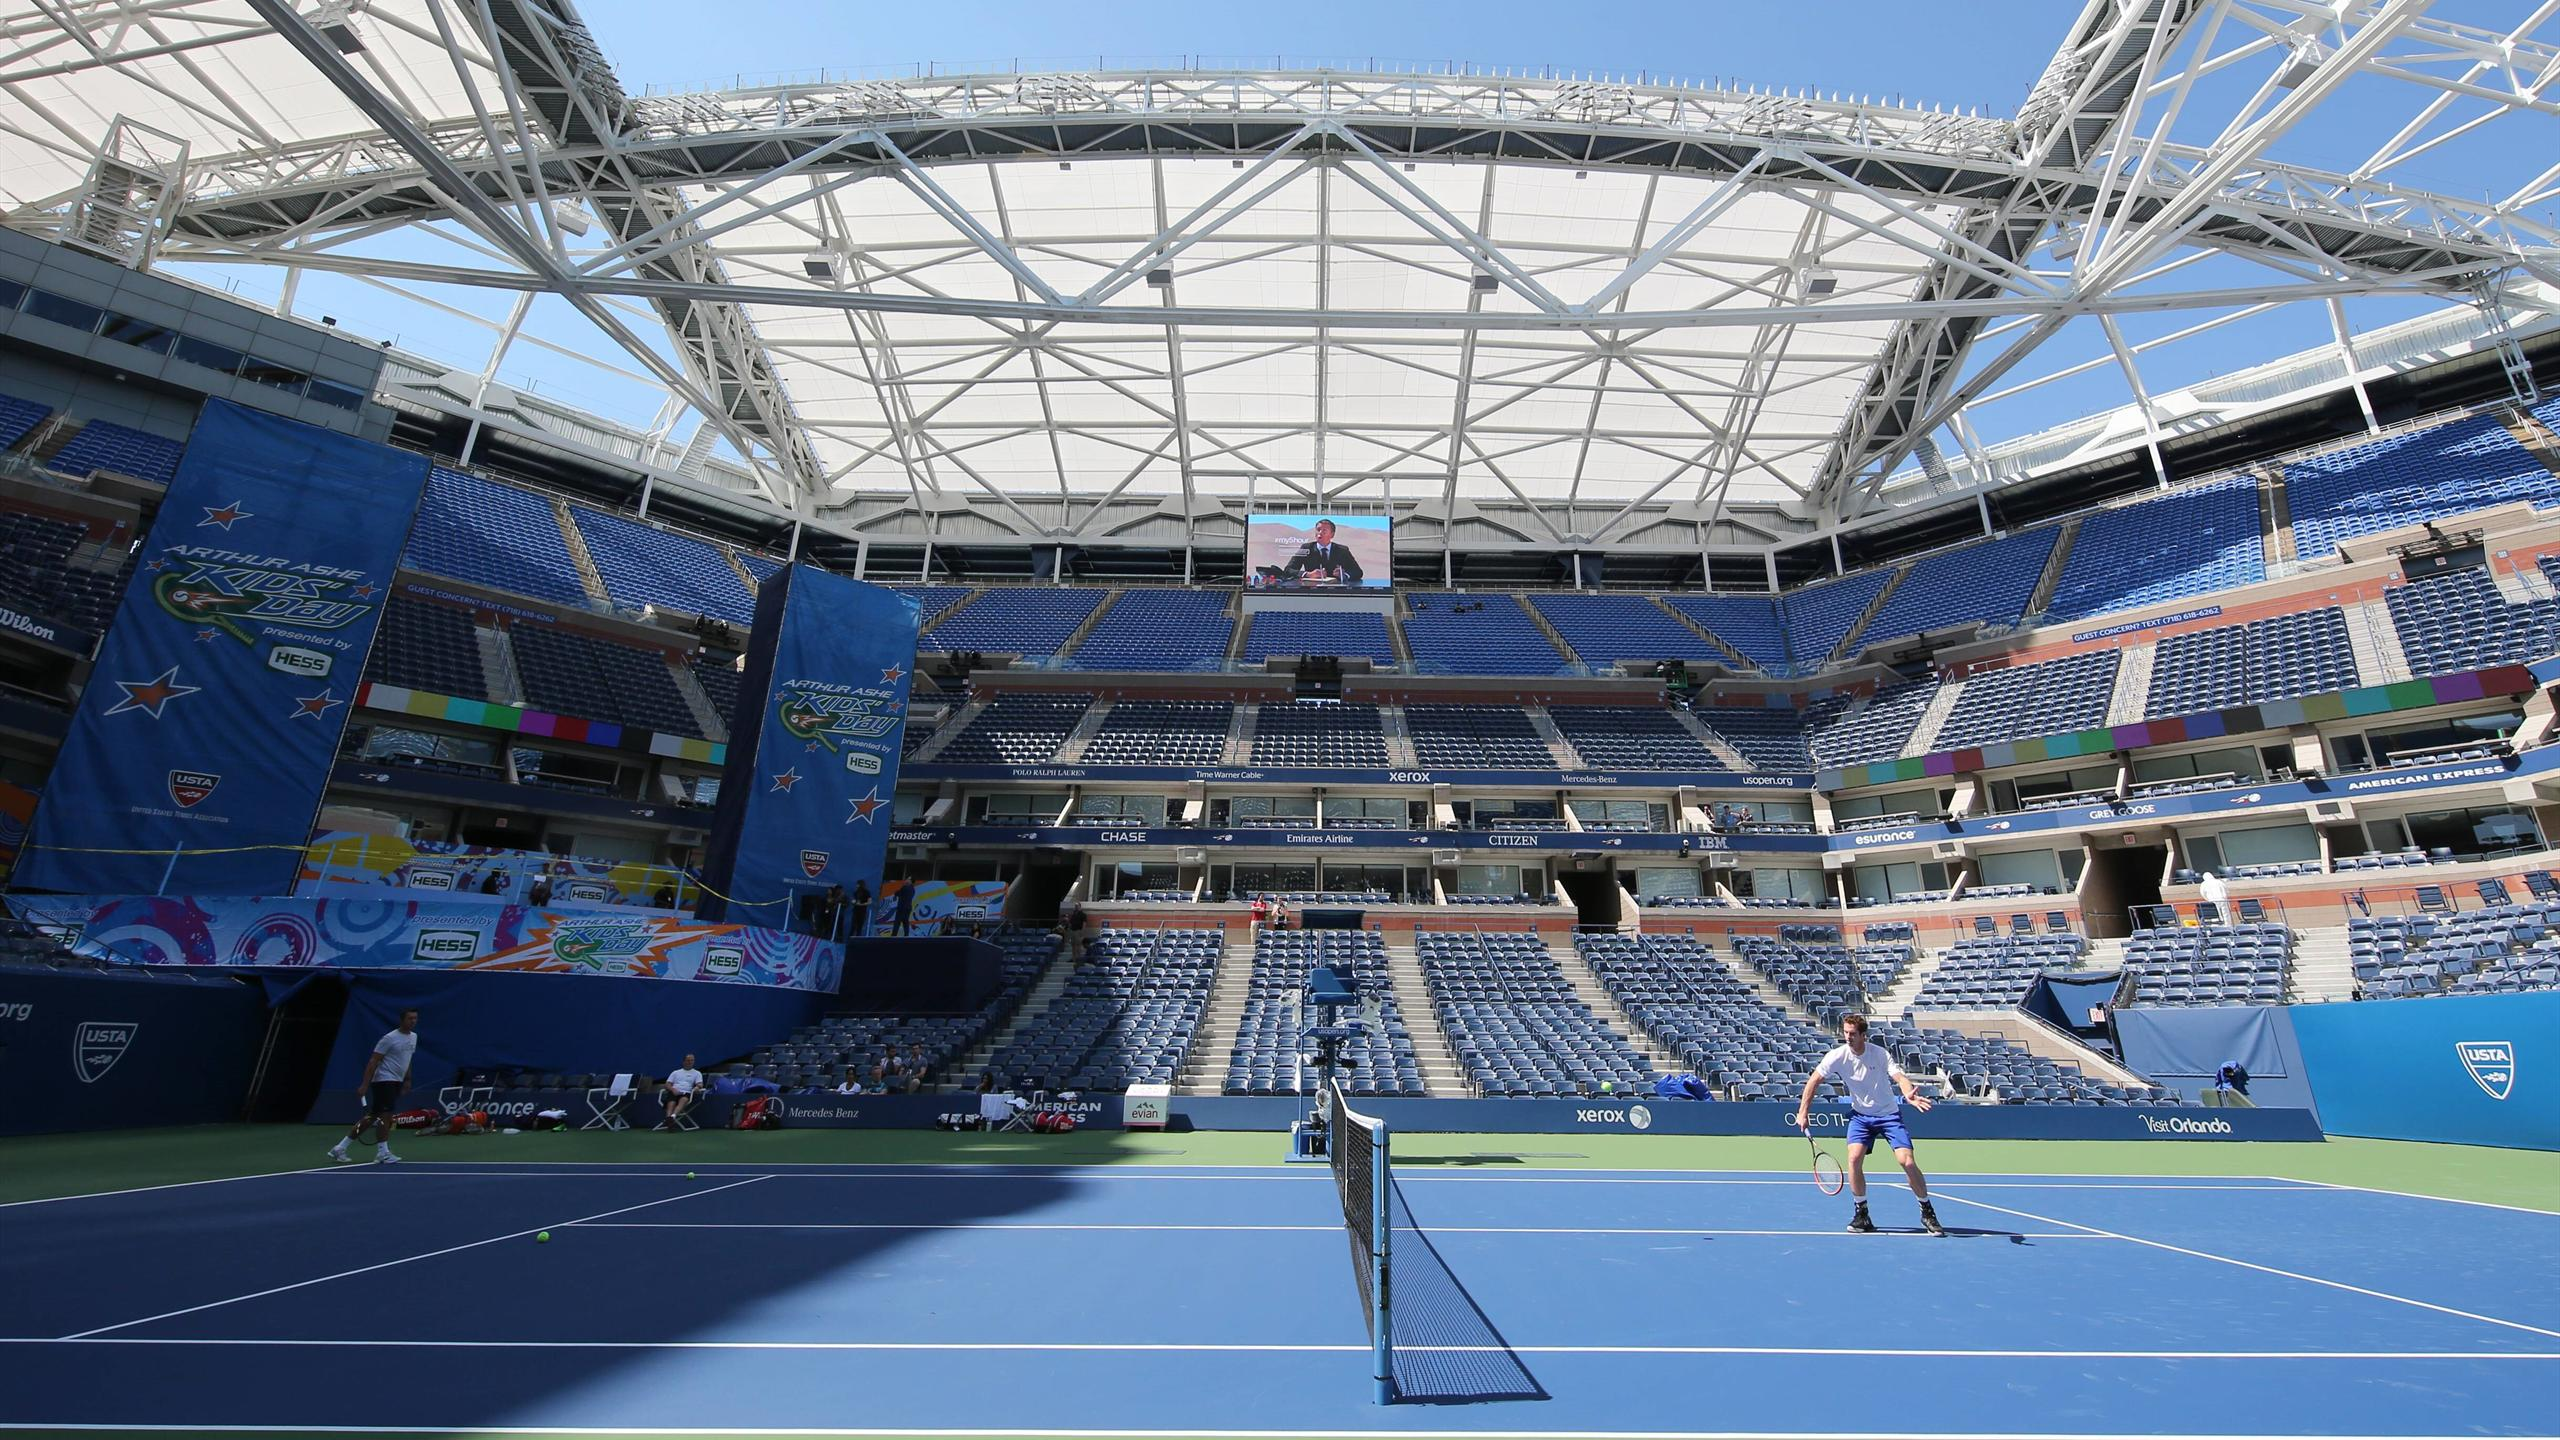 Andy Murray's training session on Arthur Ashe Staduim